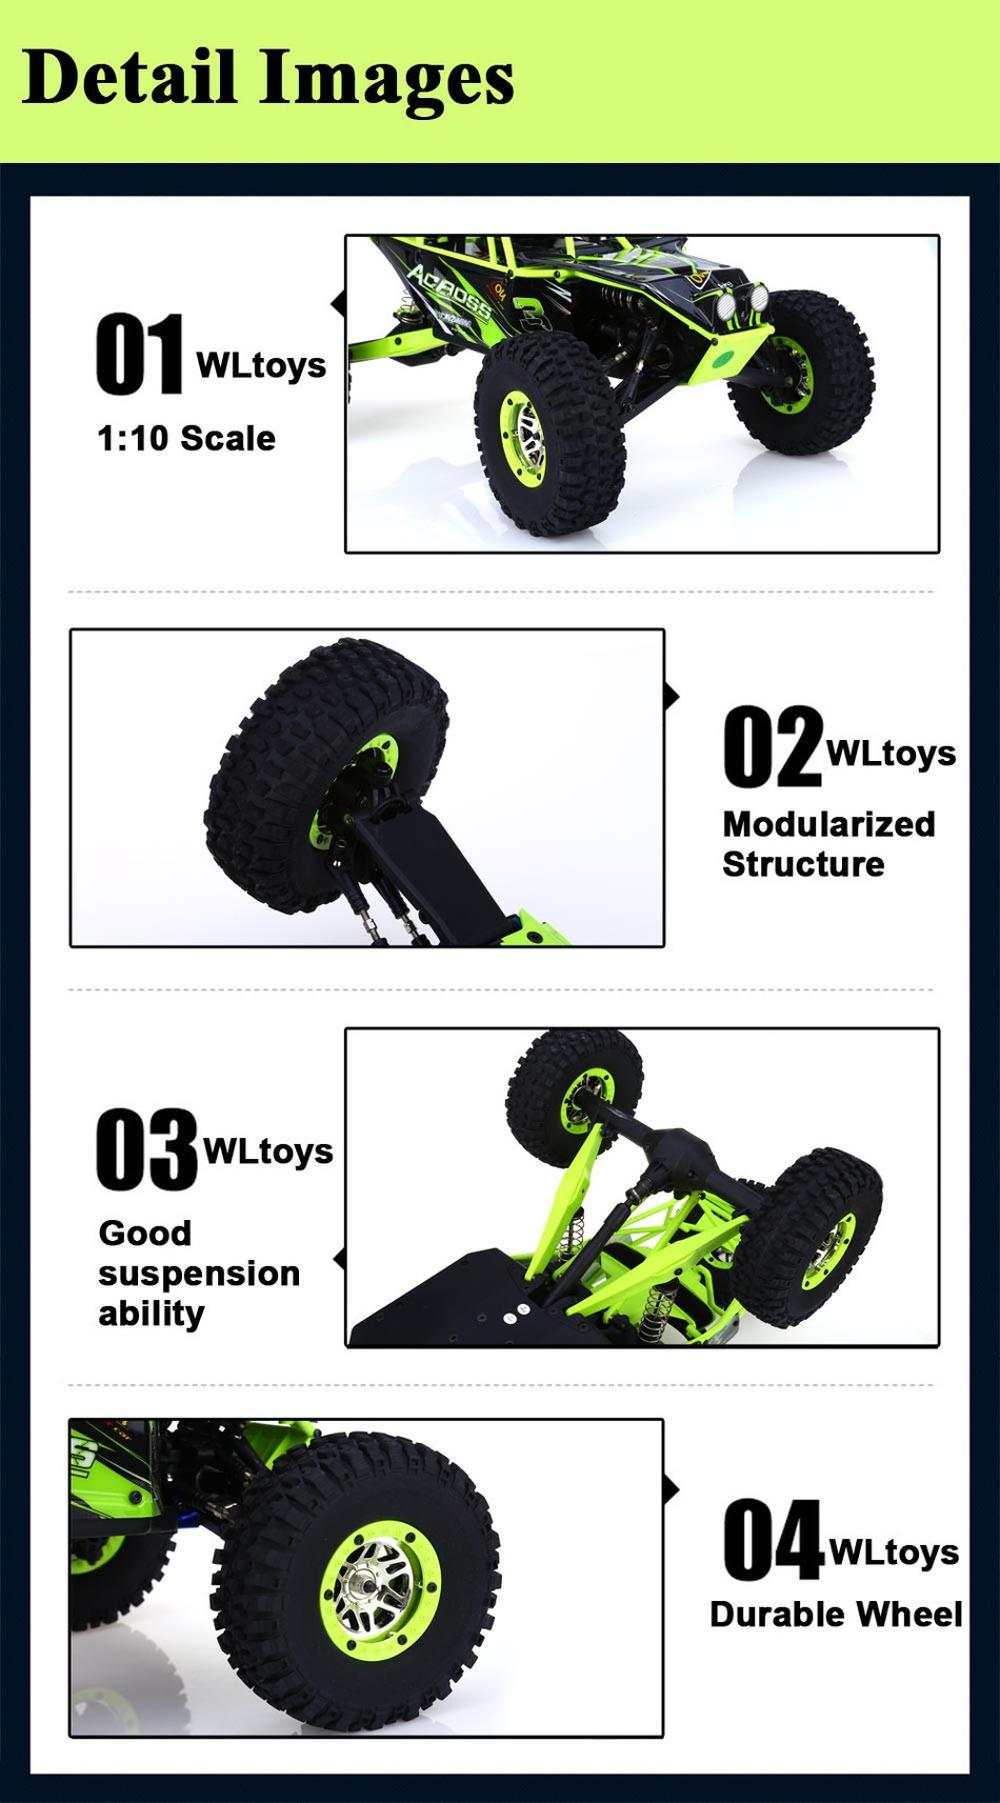 Global Drone WL10428 1:10 RC Car 2.4G Electric Brushed Rock Crawler SUV Remote Control Off-Road Model Toy Vehicles